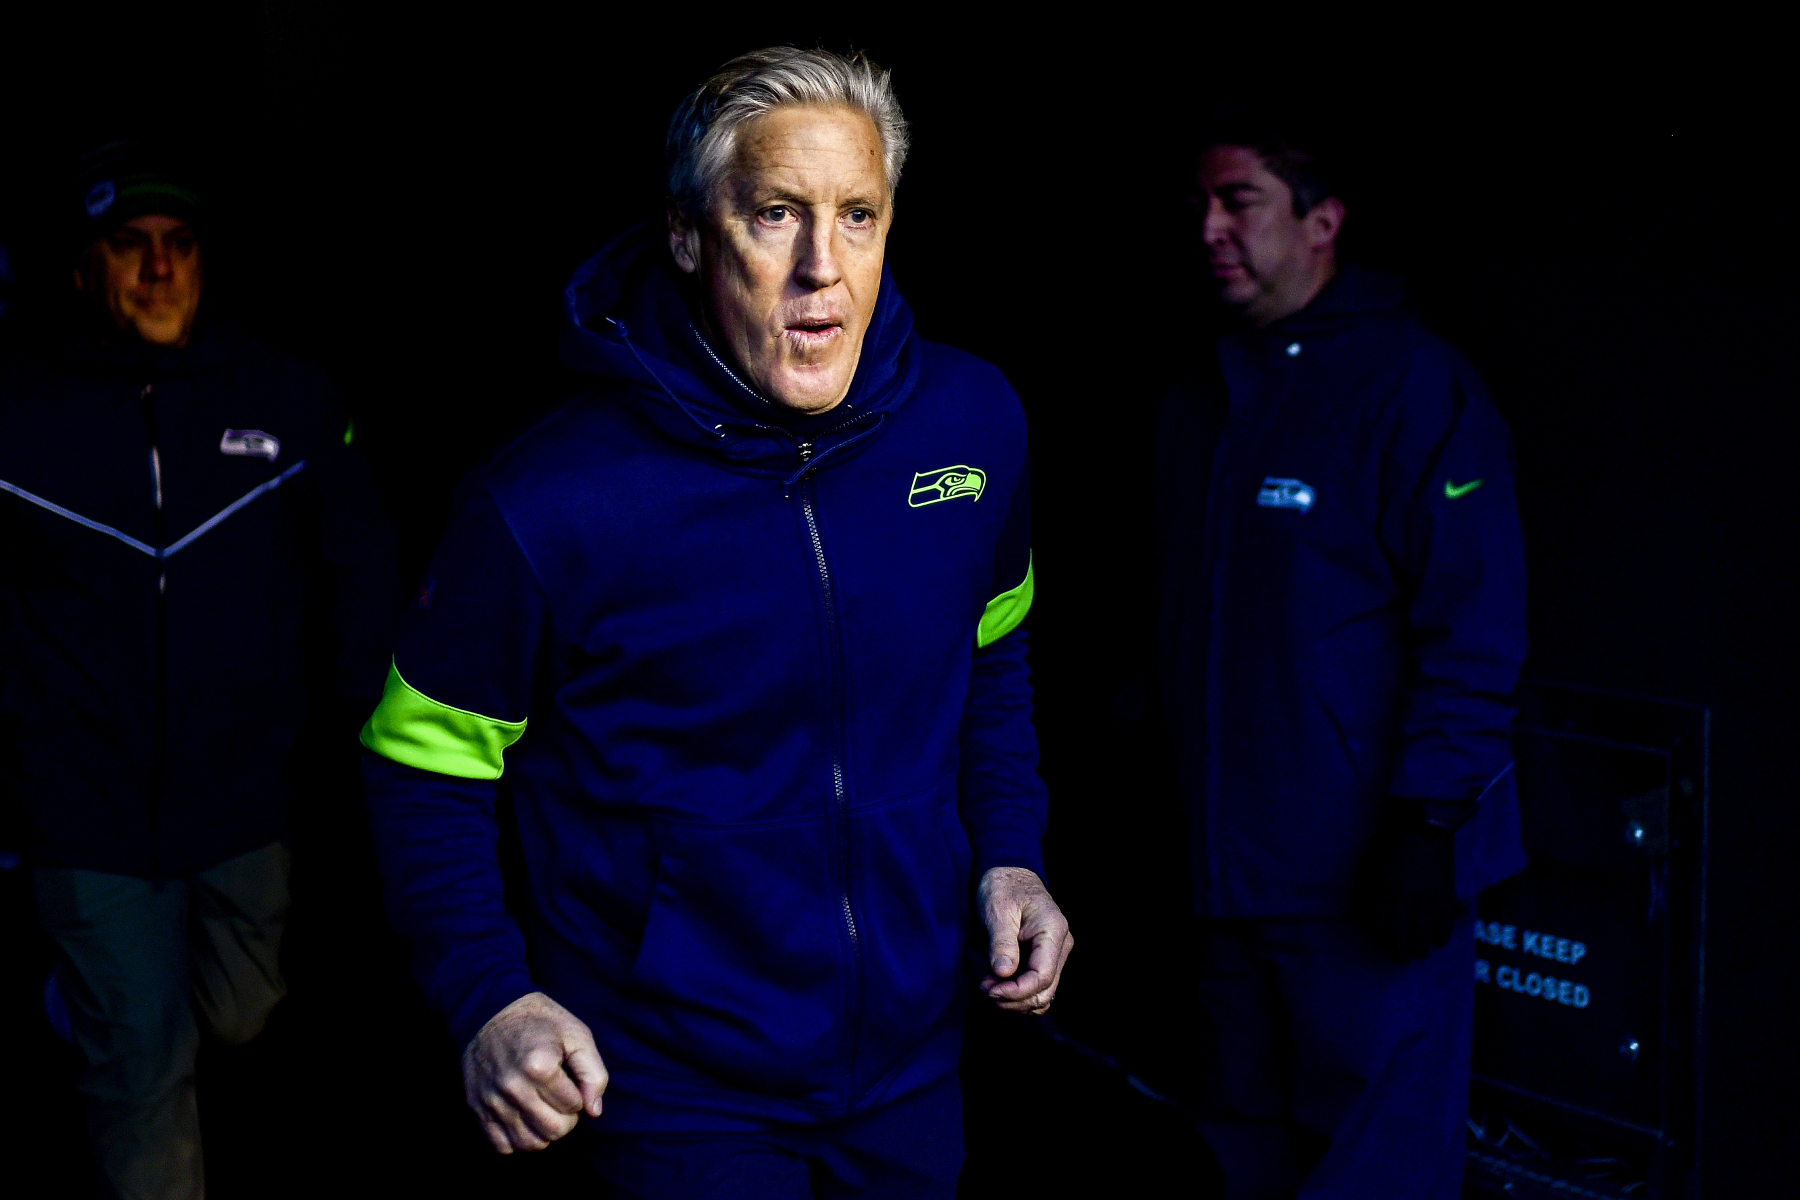 Pete Carroll has led the Seattle Seahawks to a ton of success. However, he is 69 years old, so what is his future with the Seahawks.